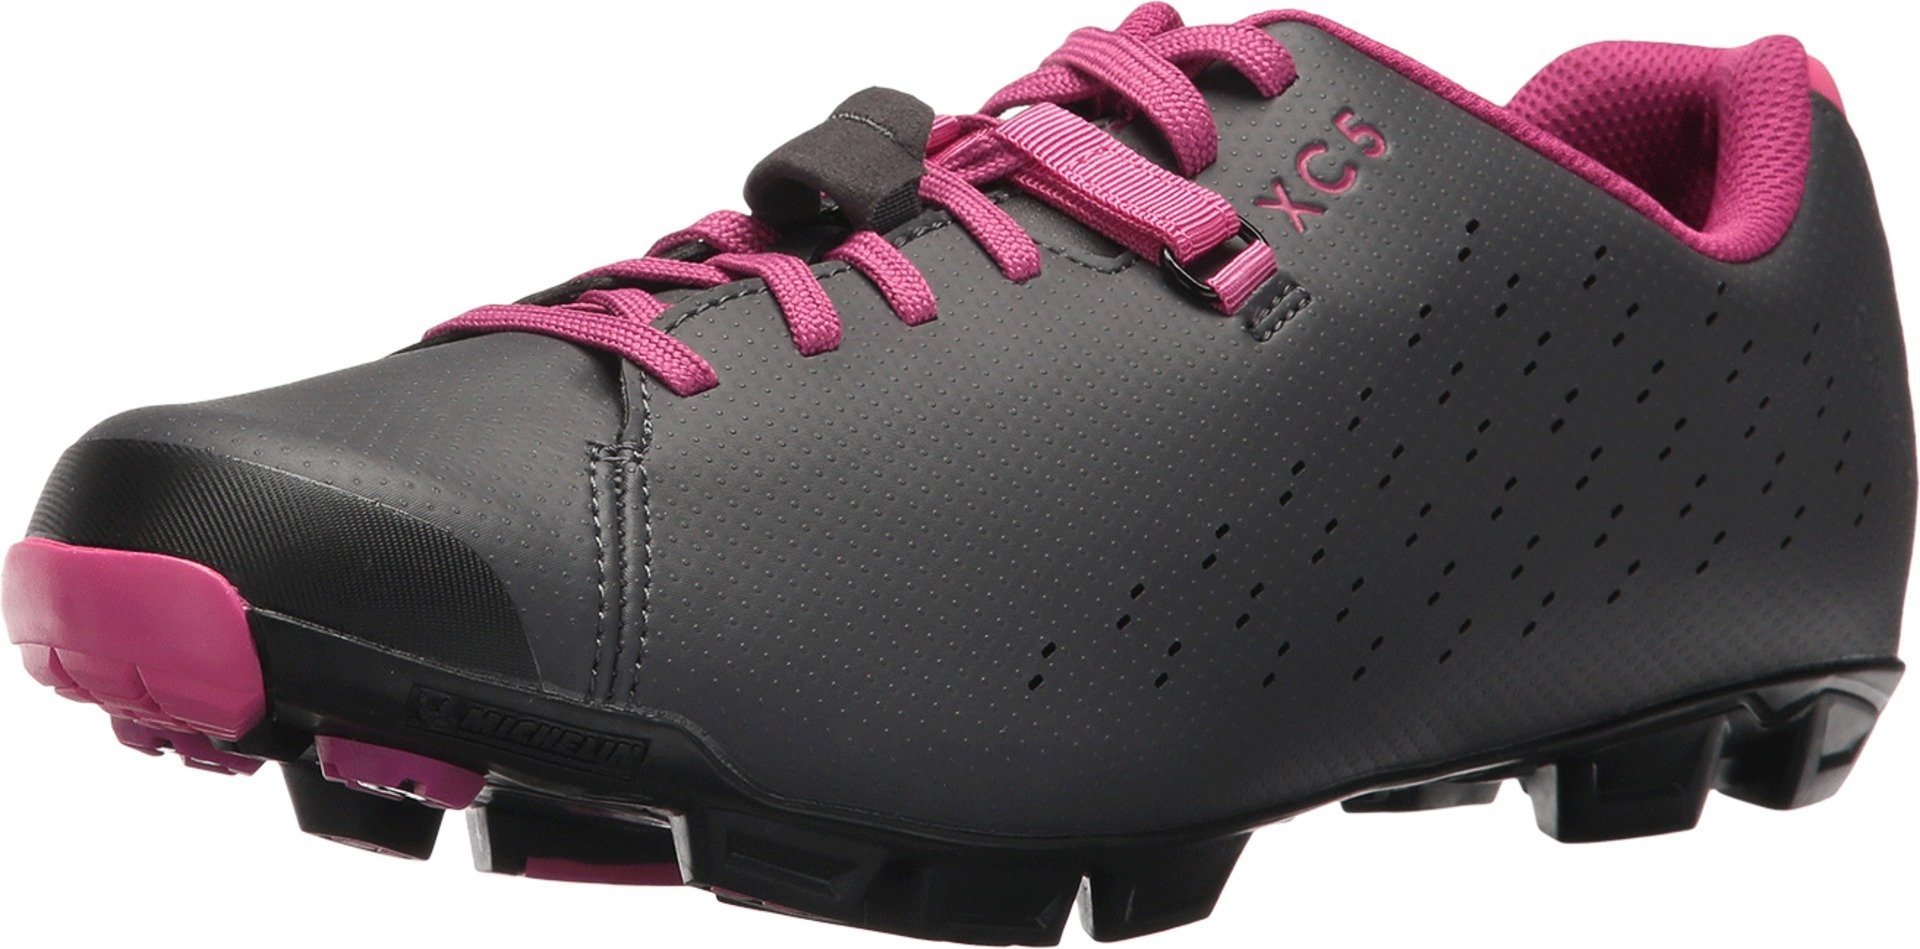 SHIMANO SH-XC5 Mountain Bike Shoe - Women's Grey/Magenta; 38 by SHIMANO